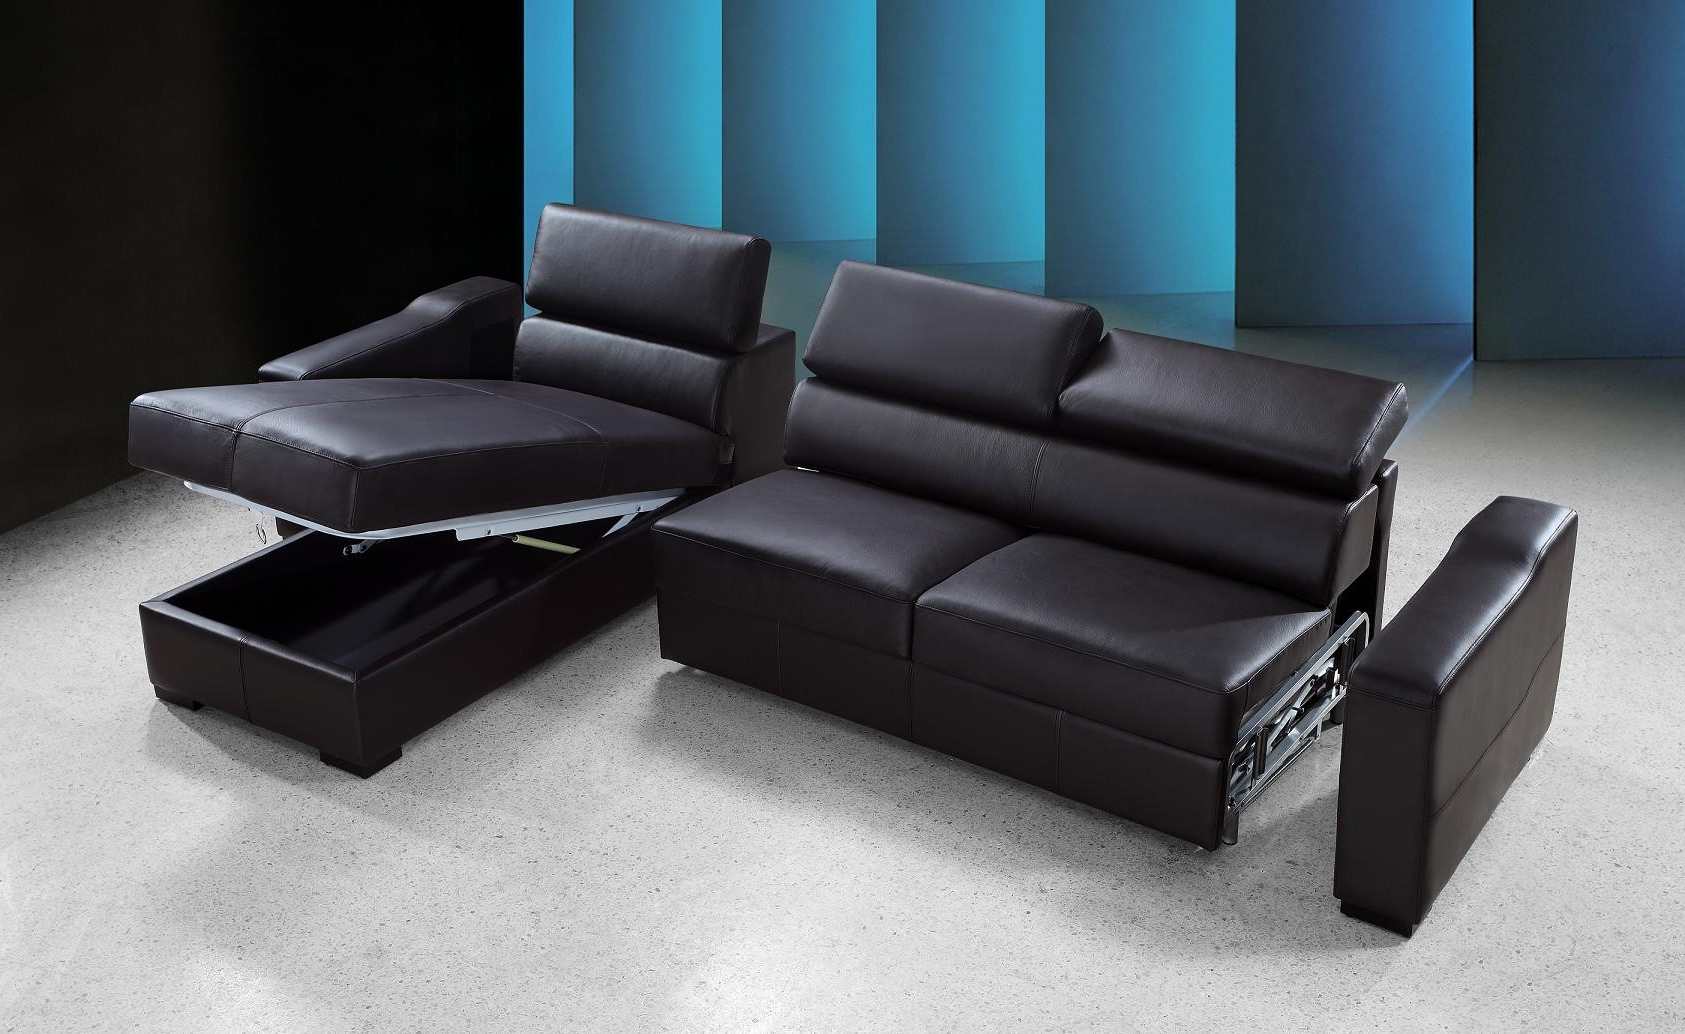 Sectional Sofas With Storage Throughout Recent Reversible Espresso Leather Sectional Sofa Bed W/ Storage (View 8 of 15)